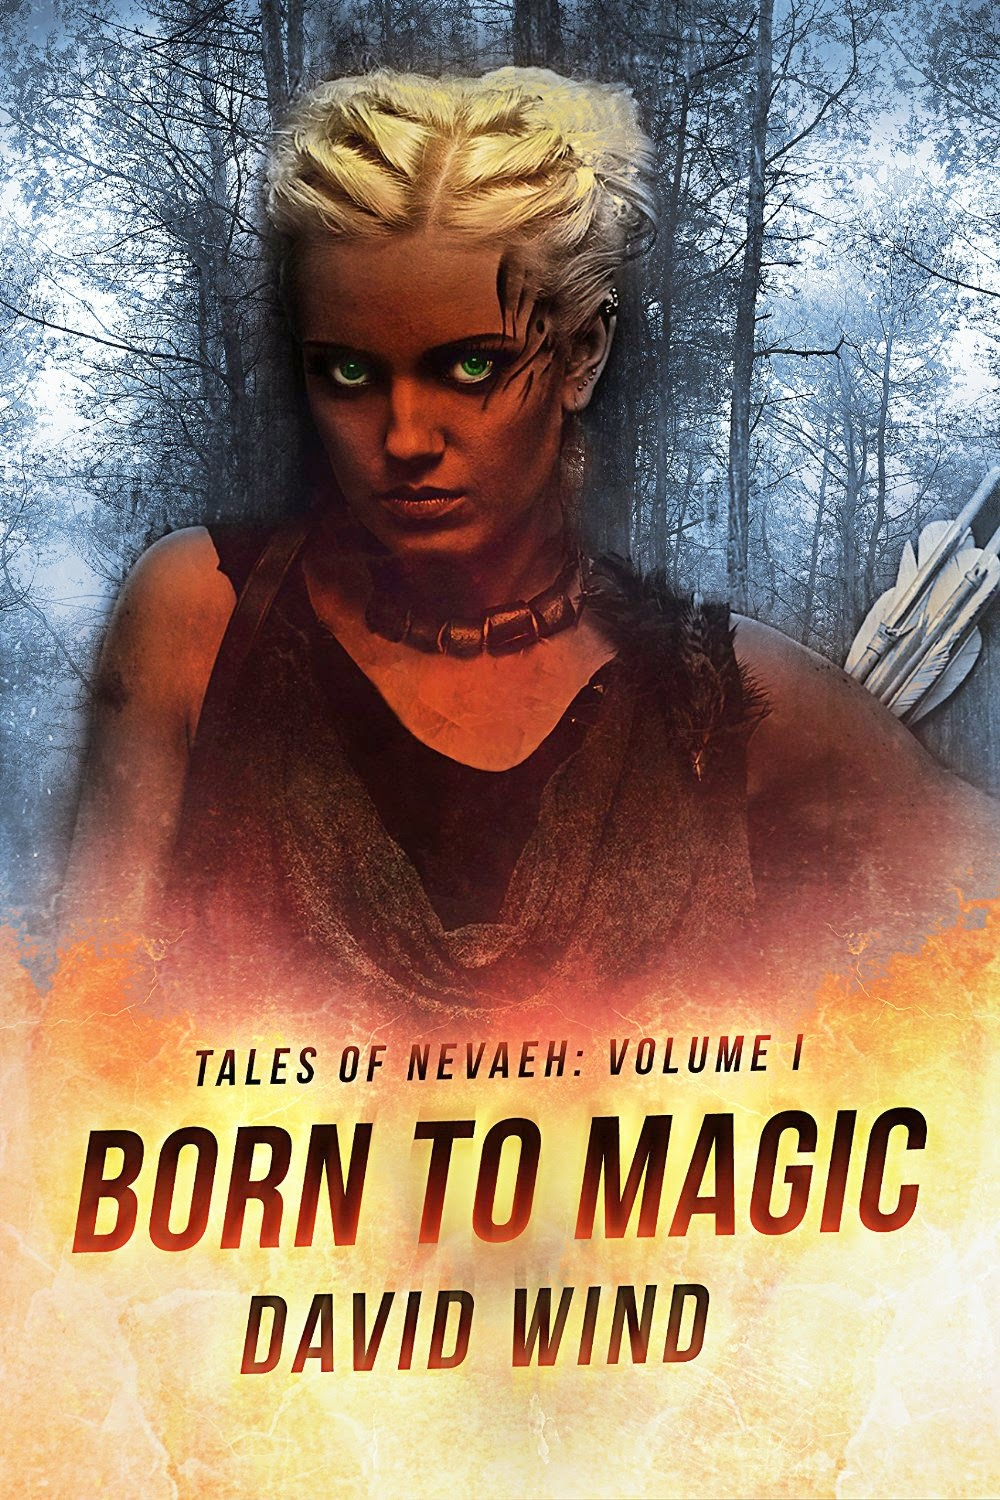 https://www.goodreads.com/book/show/23930143-born-to-magic?from_search=true